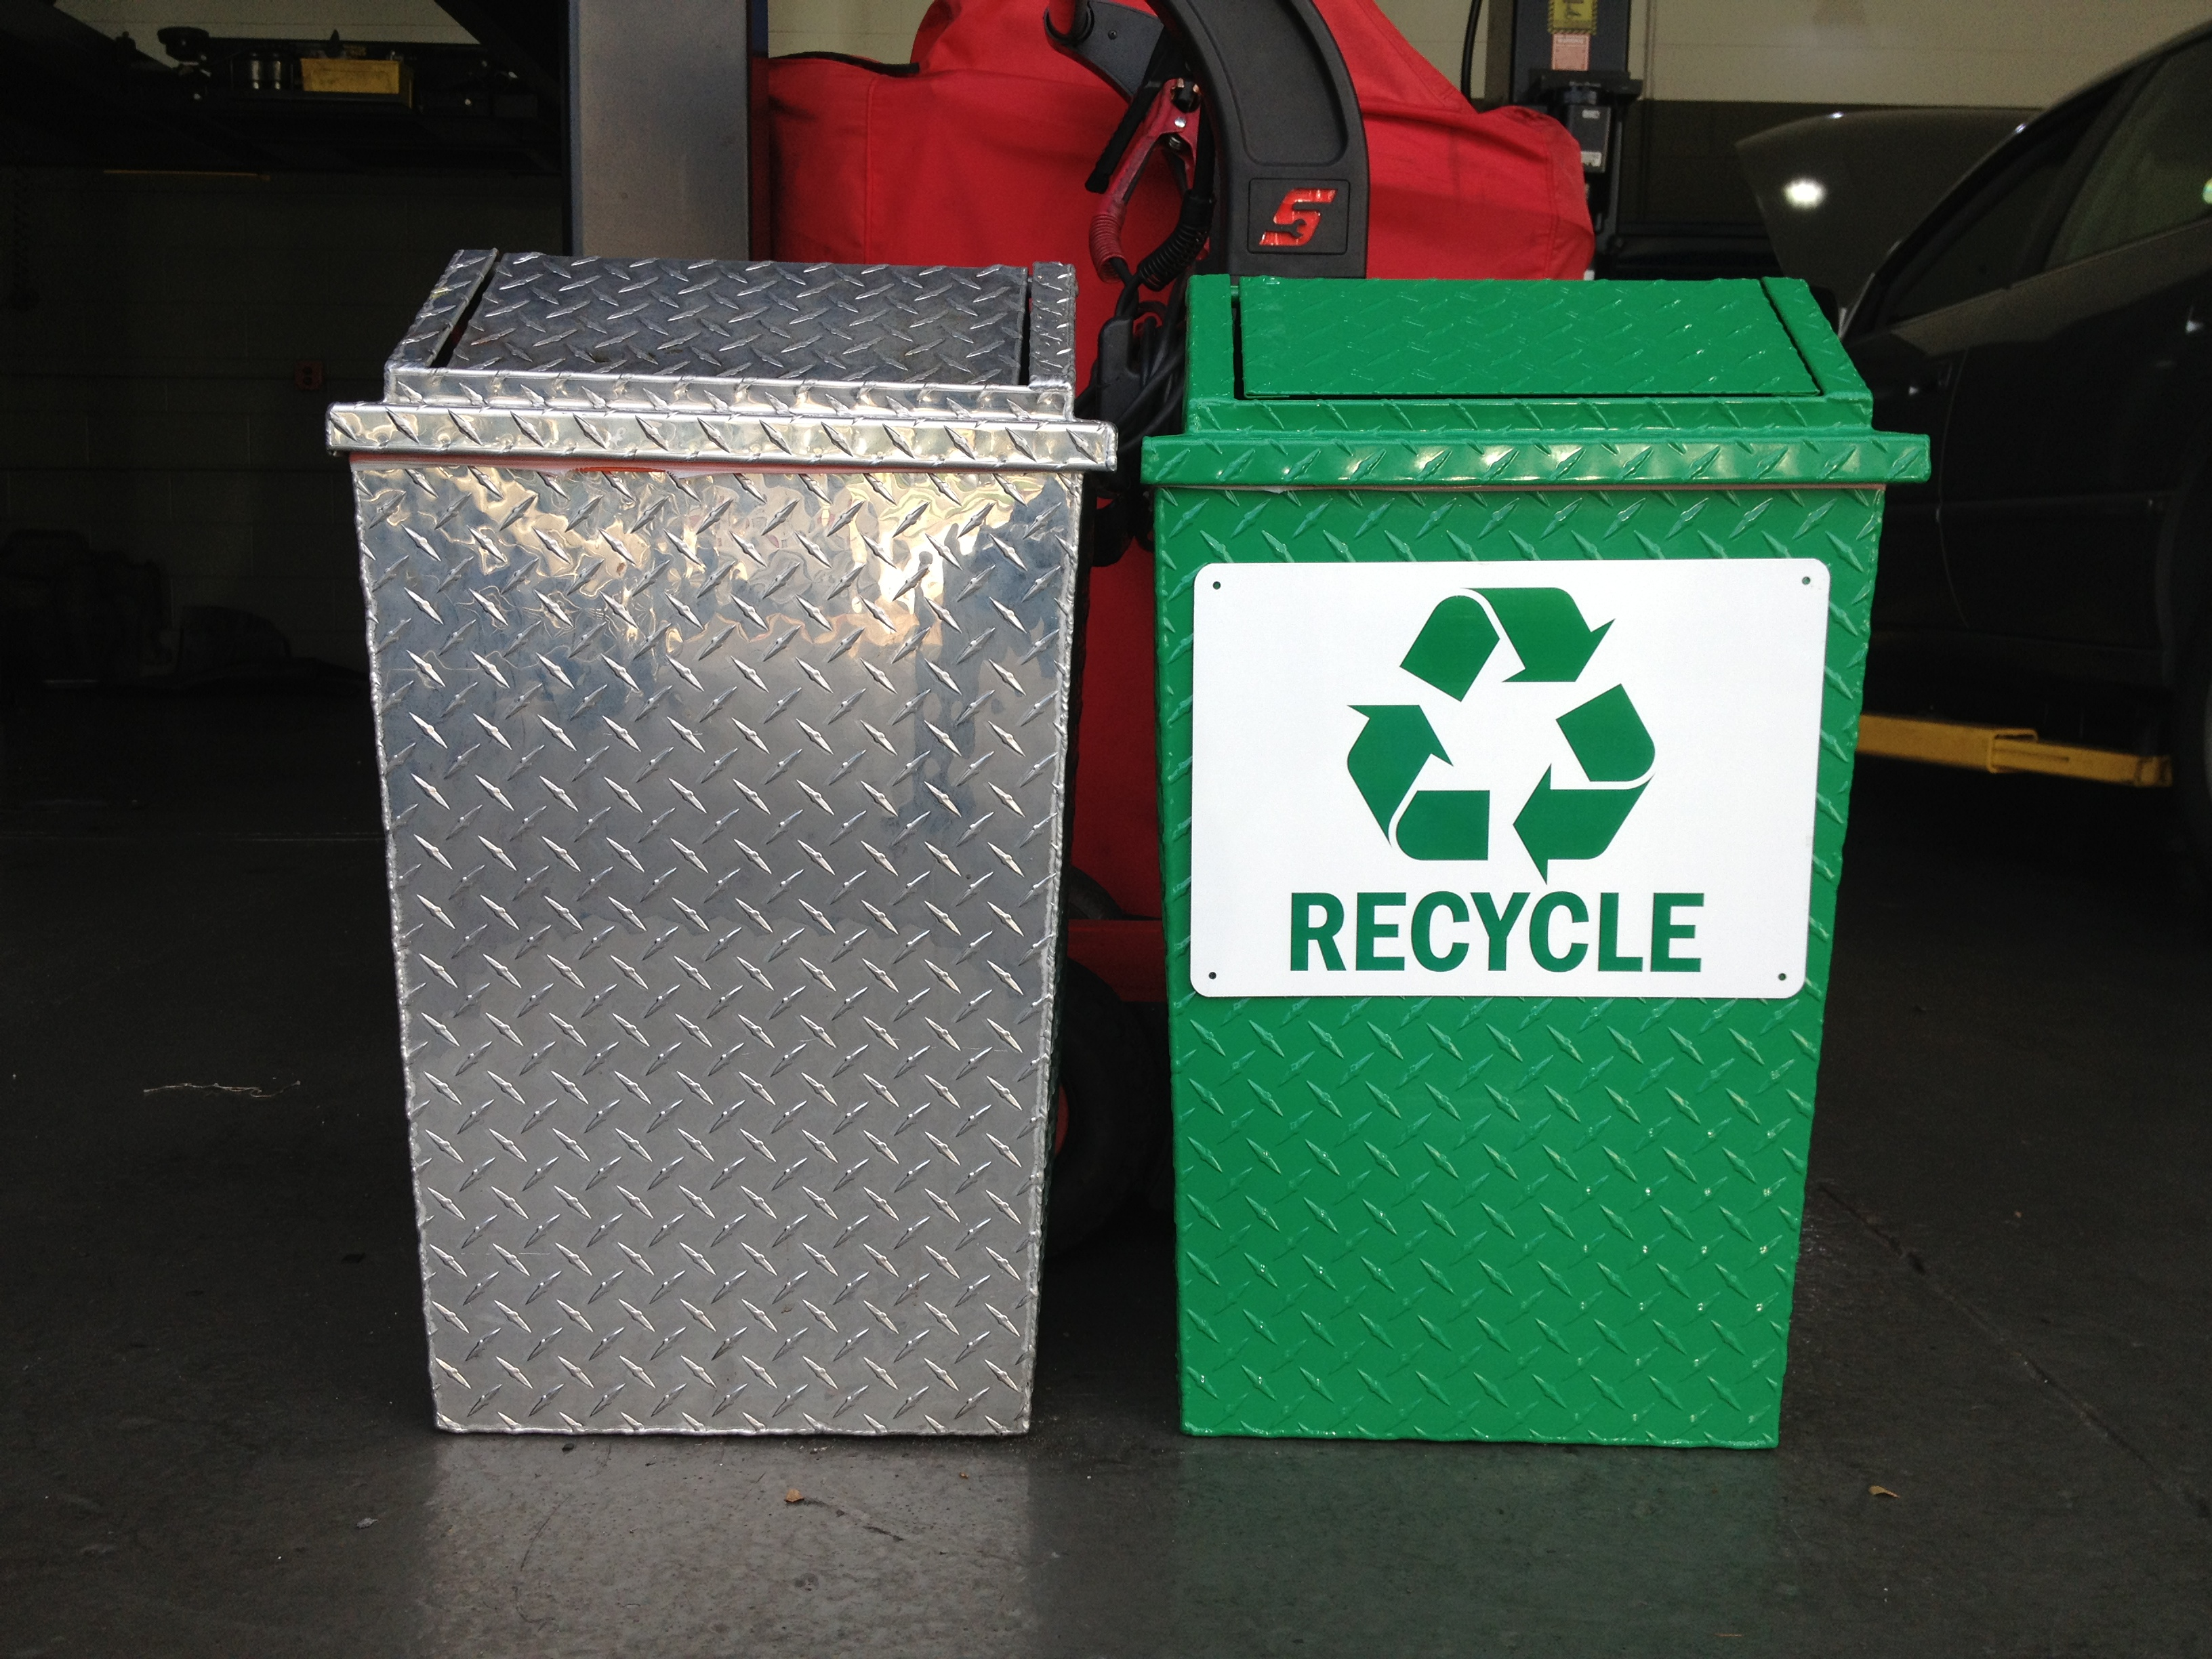 Recycle bin next to trash can